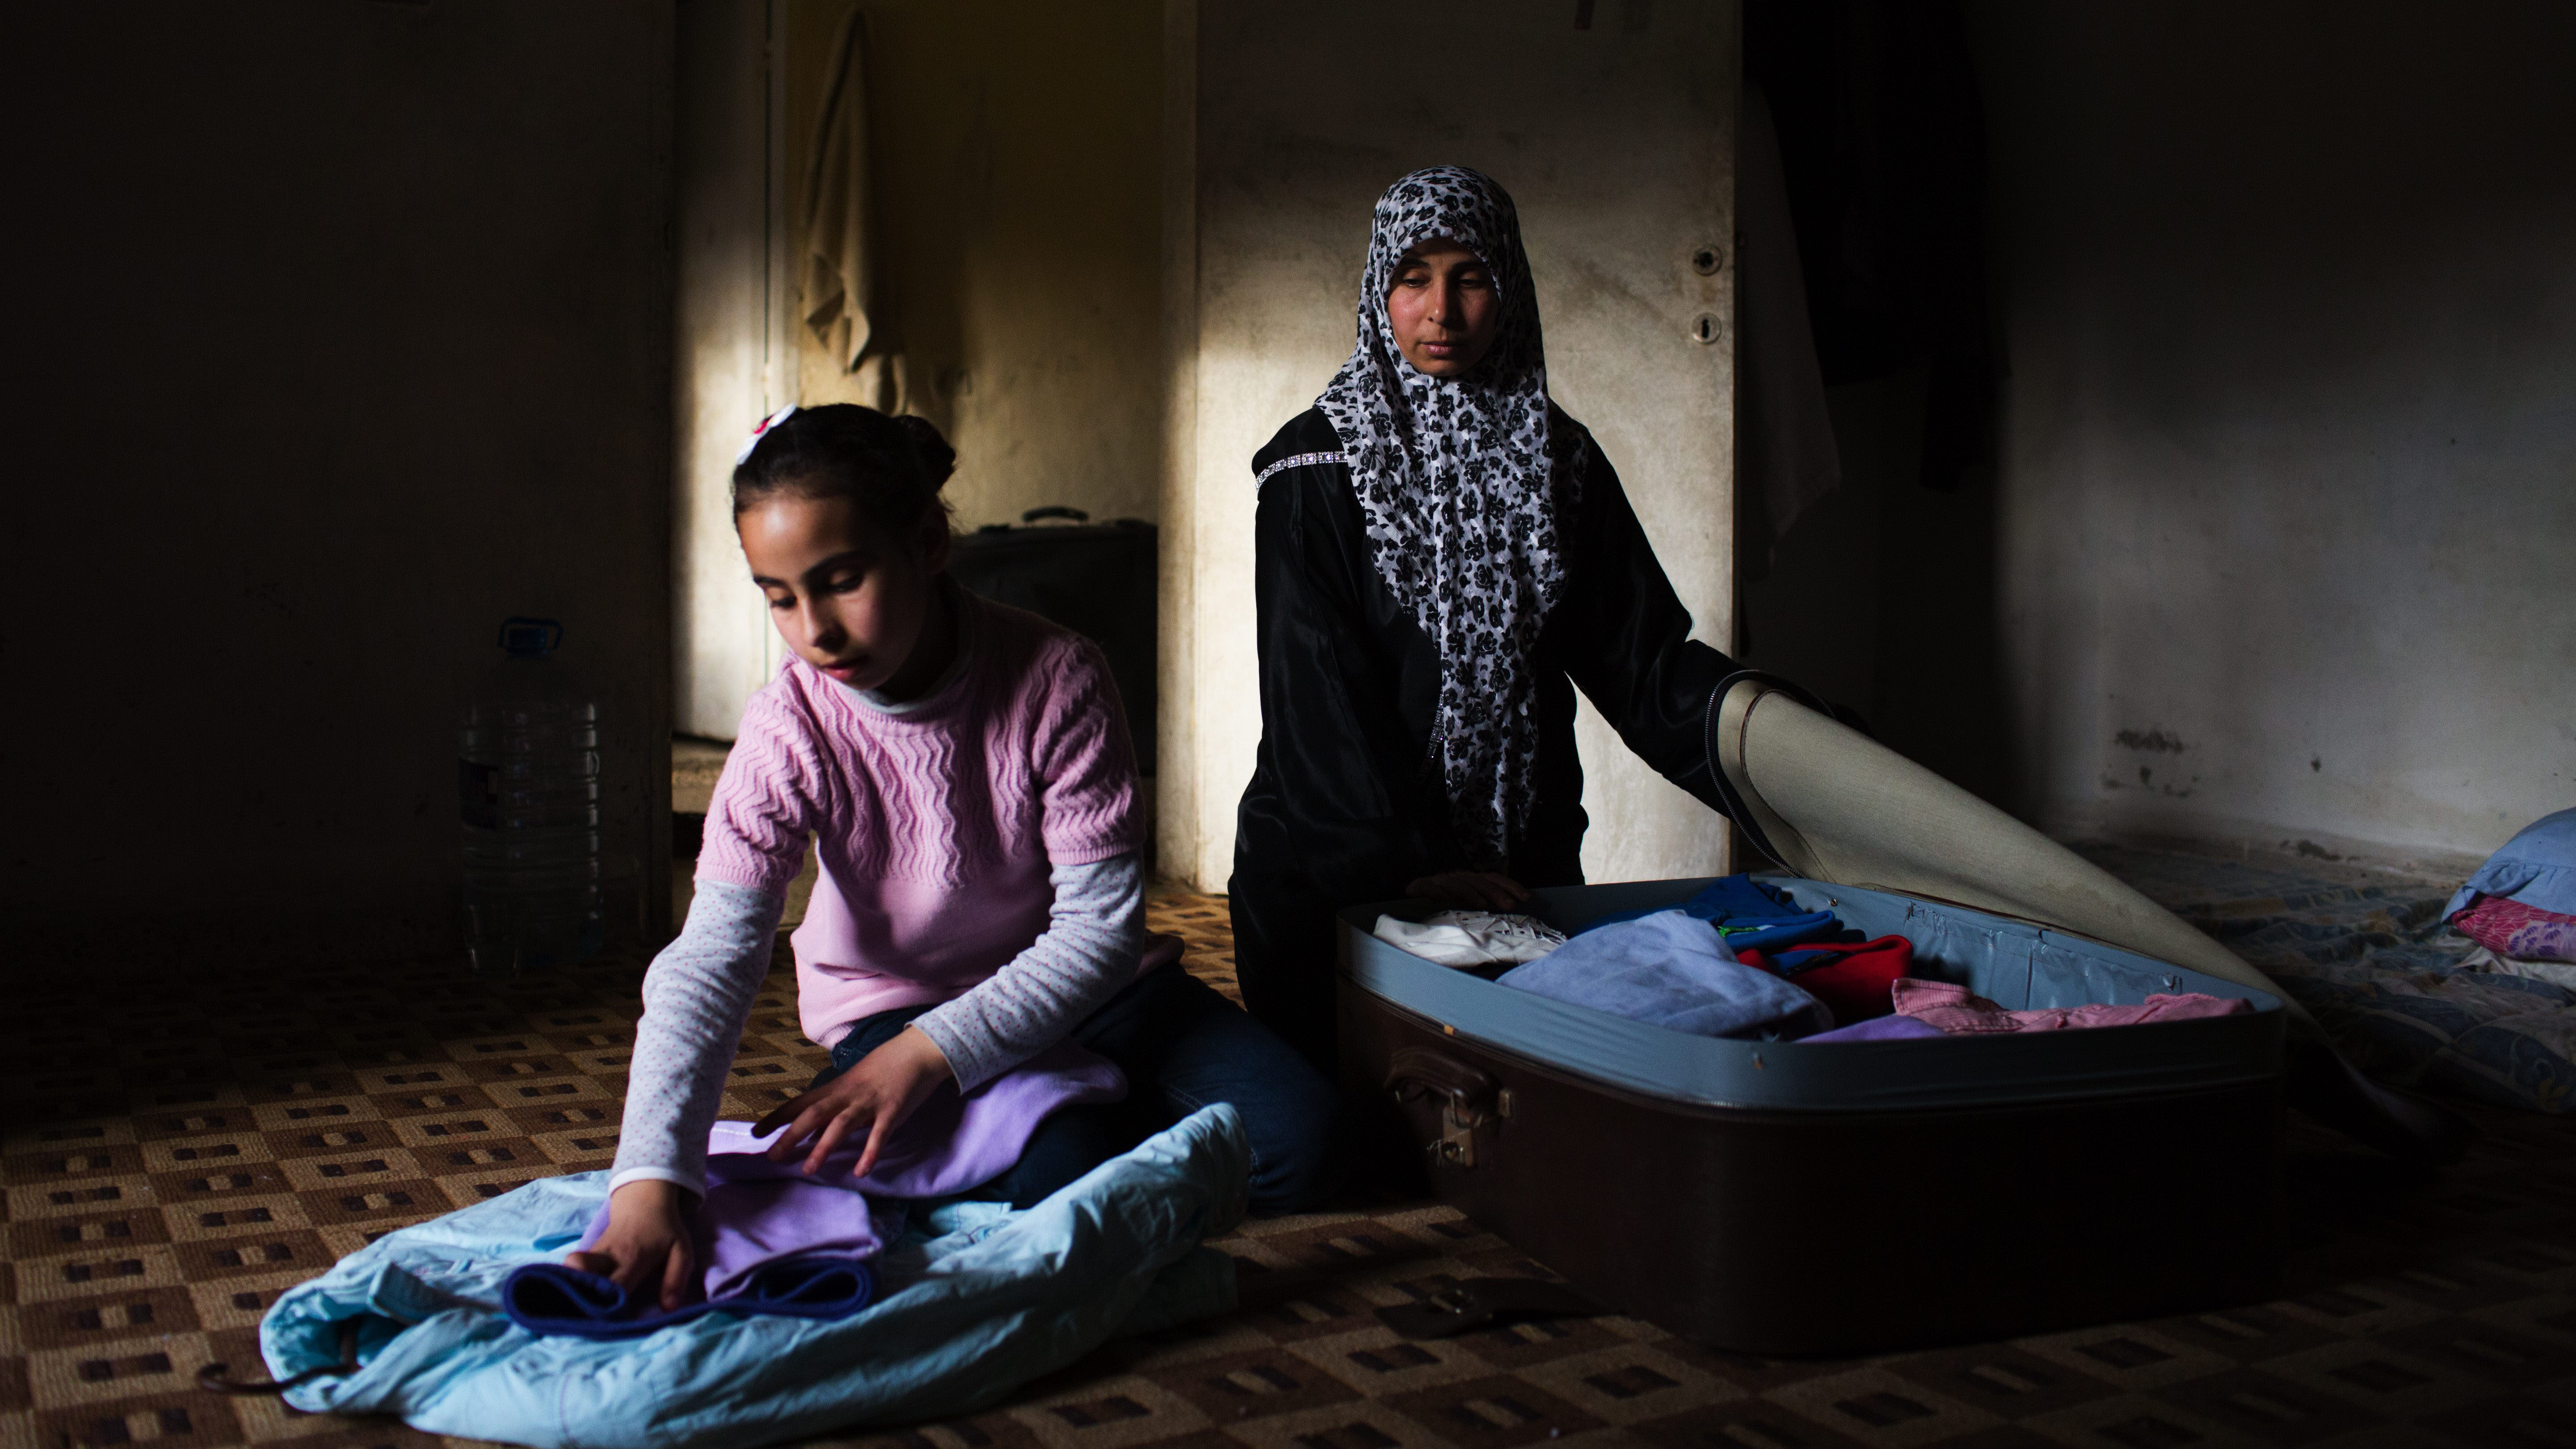 Syrian Refugees, Um Abdullah and her daugther Maysaa, 13, pack a suitcase in preparation for their journey to Gemany, at their temporary home in Barja, Lebanon in April 2014. The family will travel to Germany under the resettlement programme.